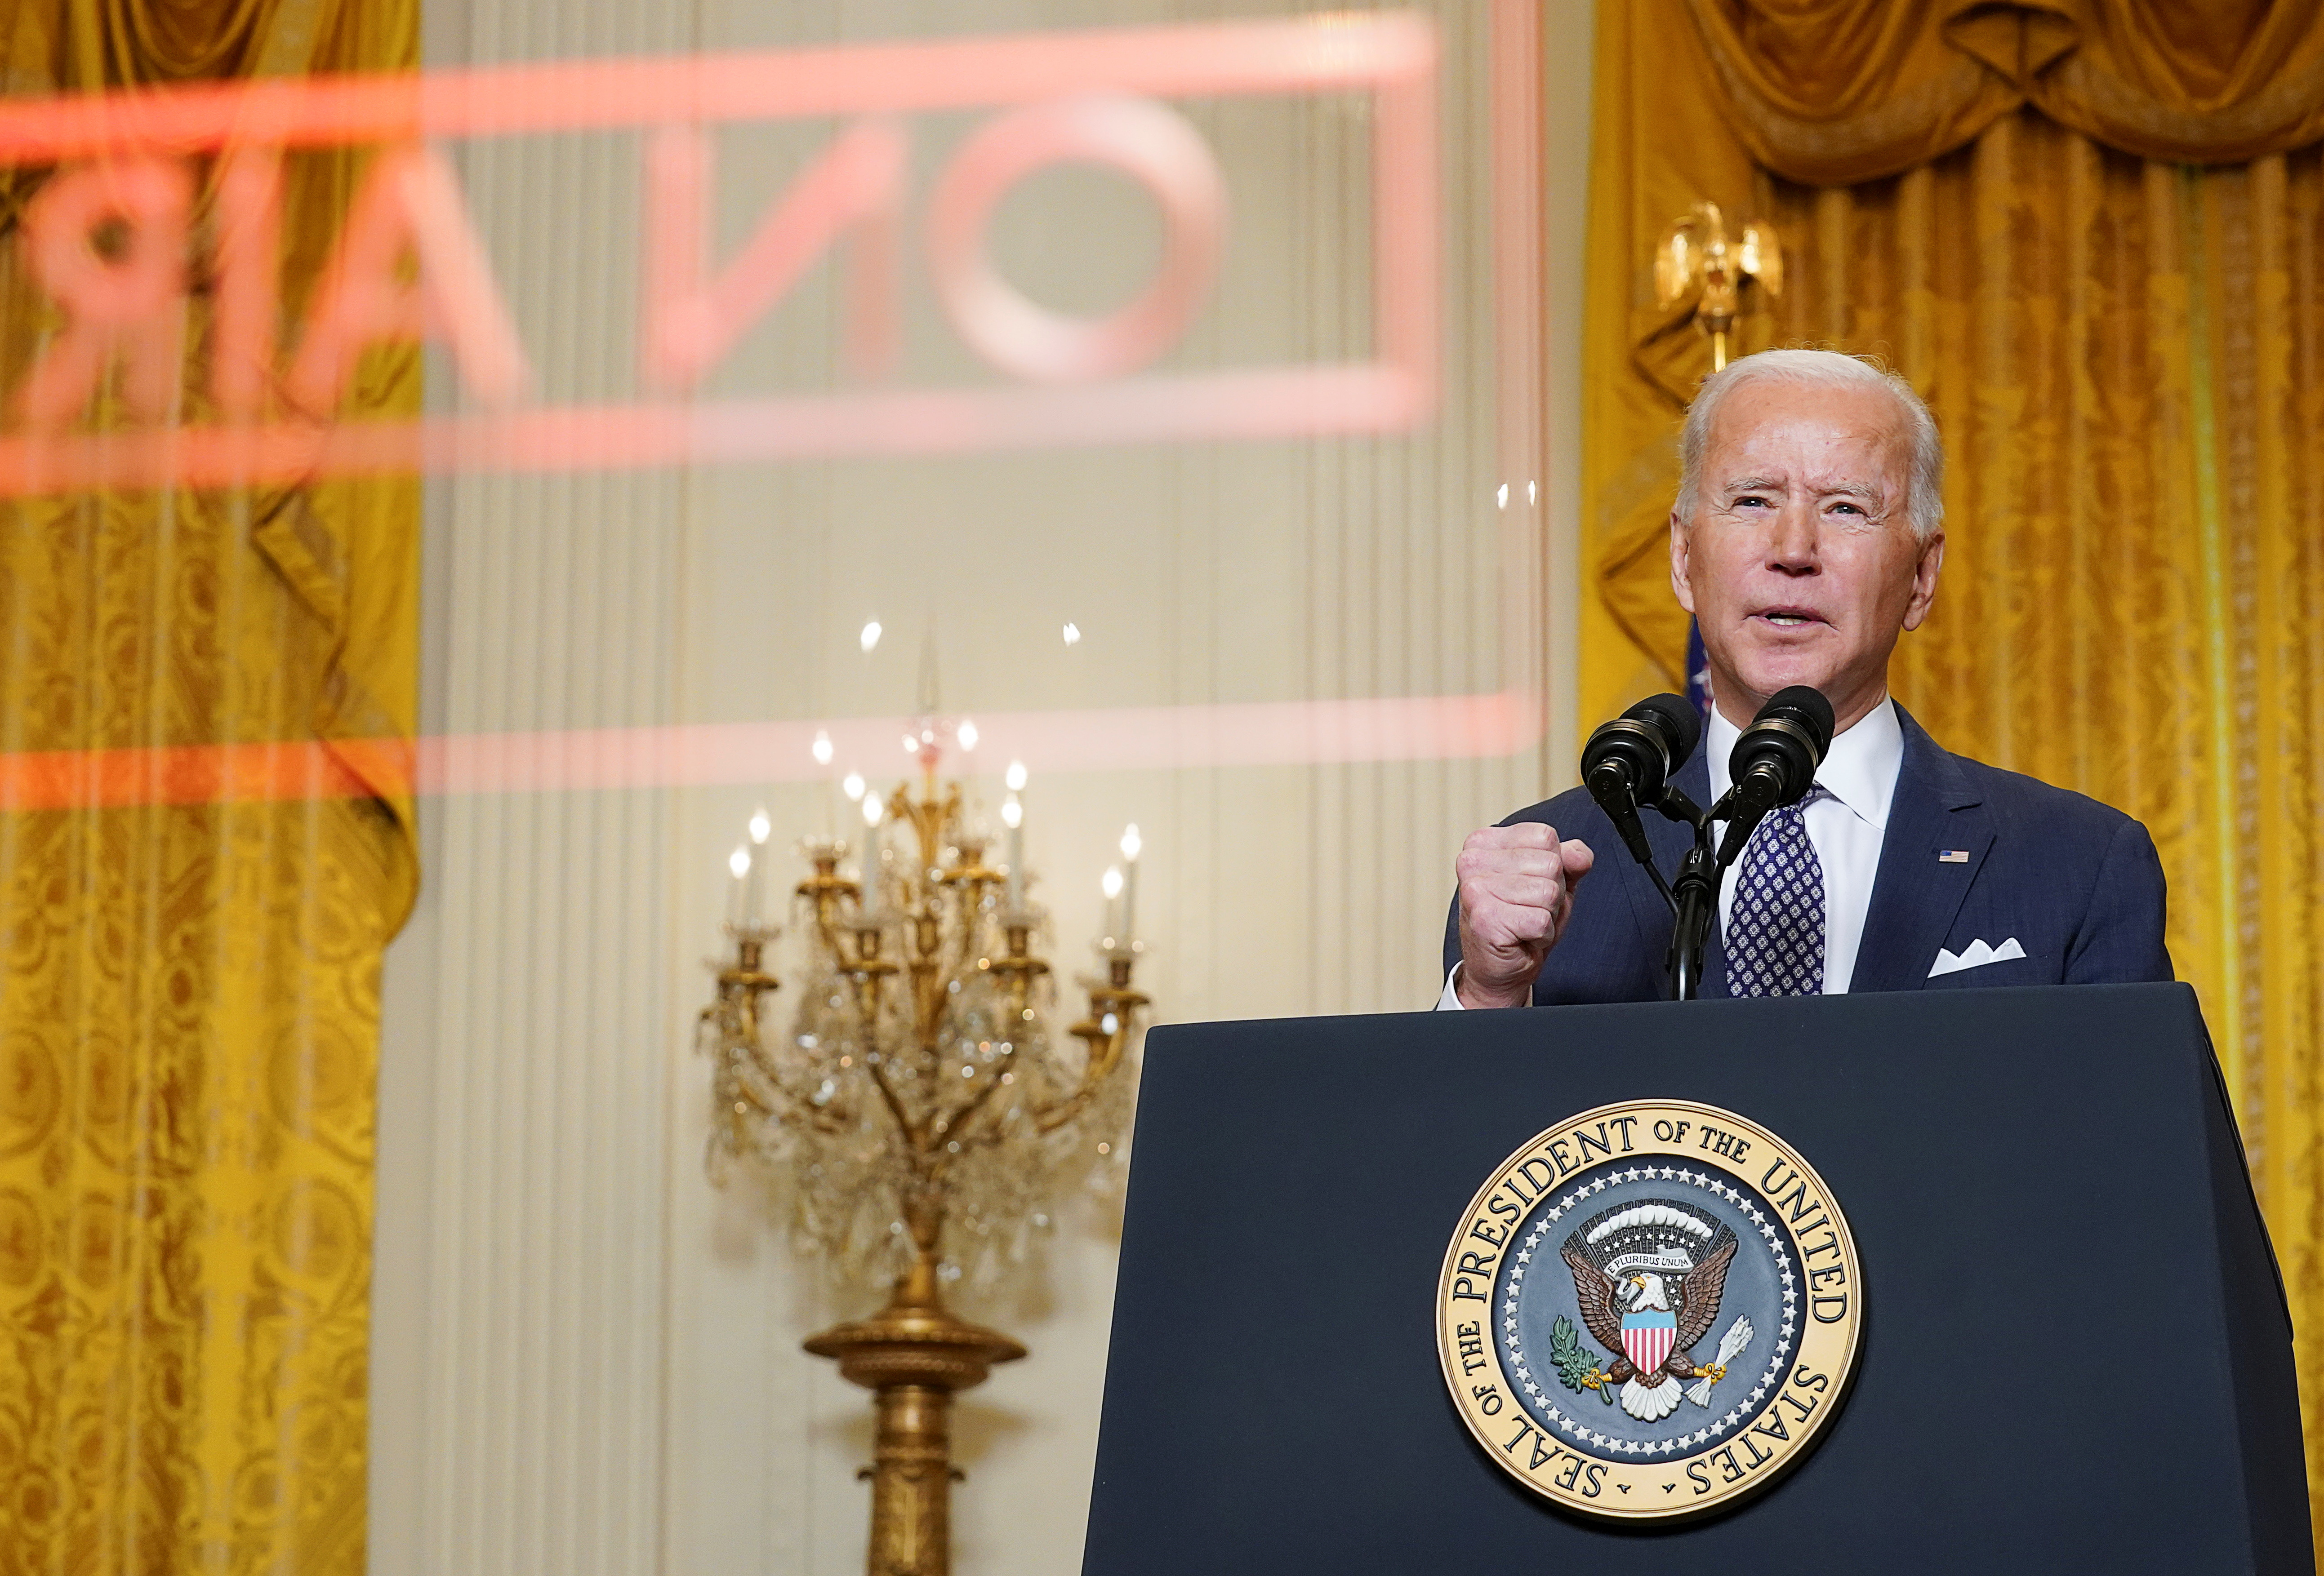 U.S. President Joe Biden delivers remarks as he takes part in a Munich Security Conference virtual event from the East Room at the White House in Washington, U.S., February 19, 2021. REUTERS/Kevin Lamarque